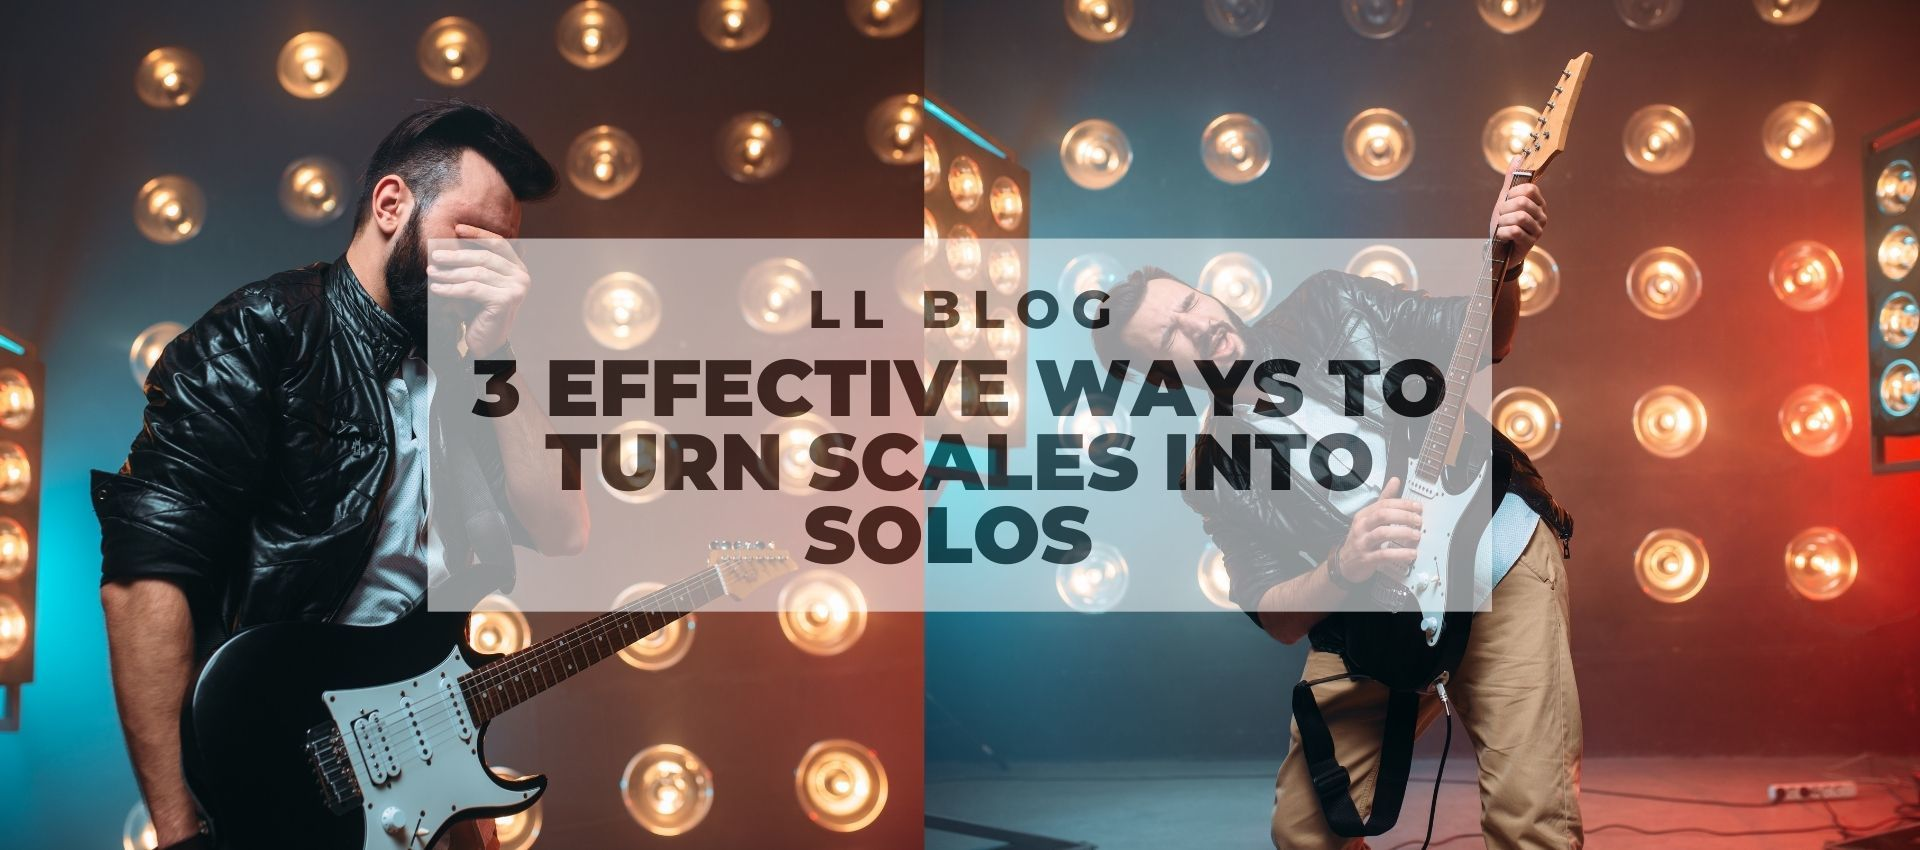 LL Blog 3 Effective Ways To Turn Scales Into Solos Open Graph